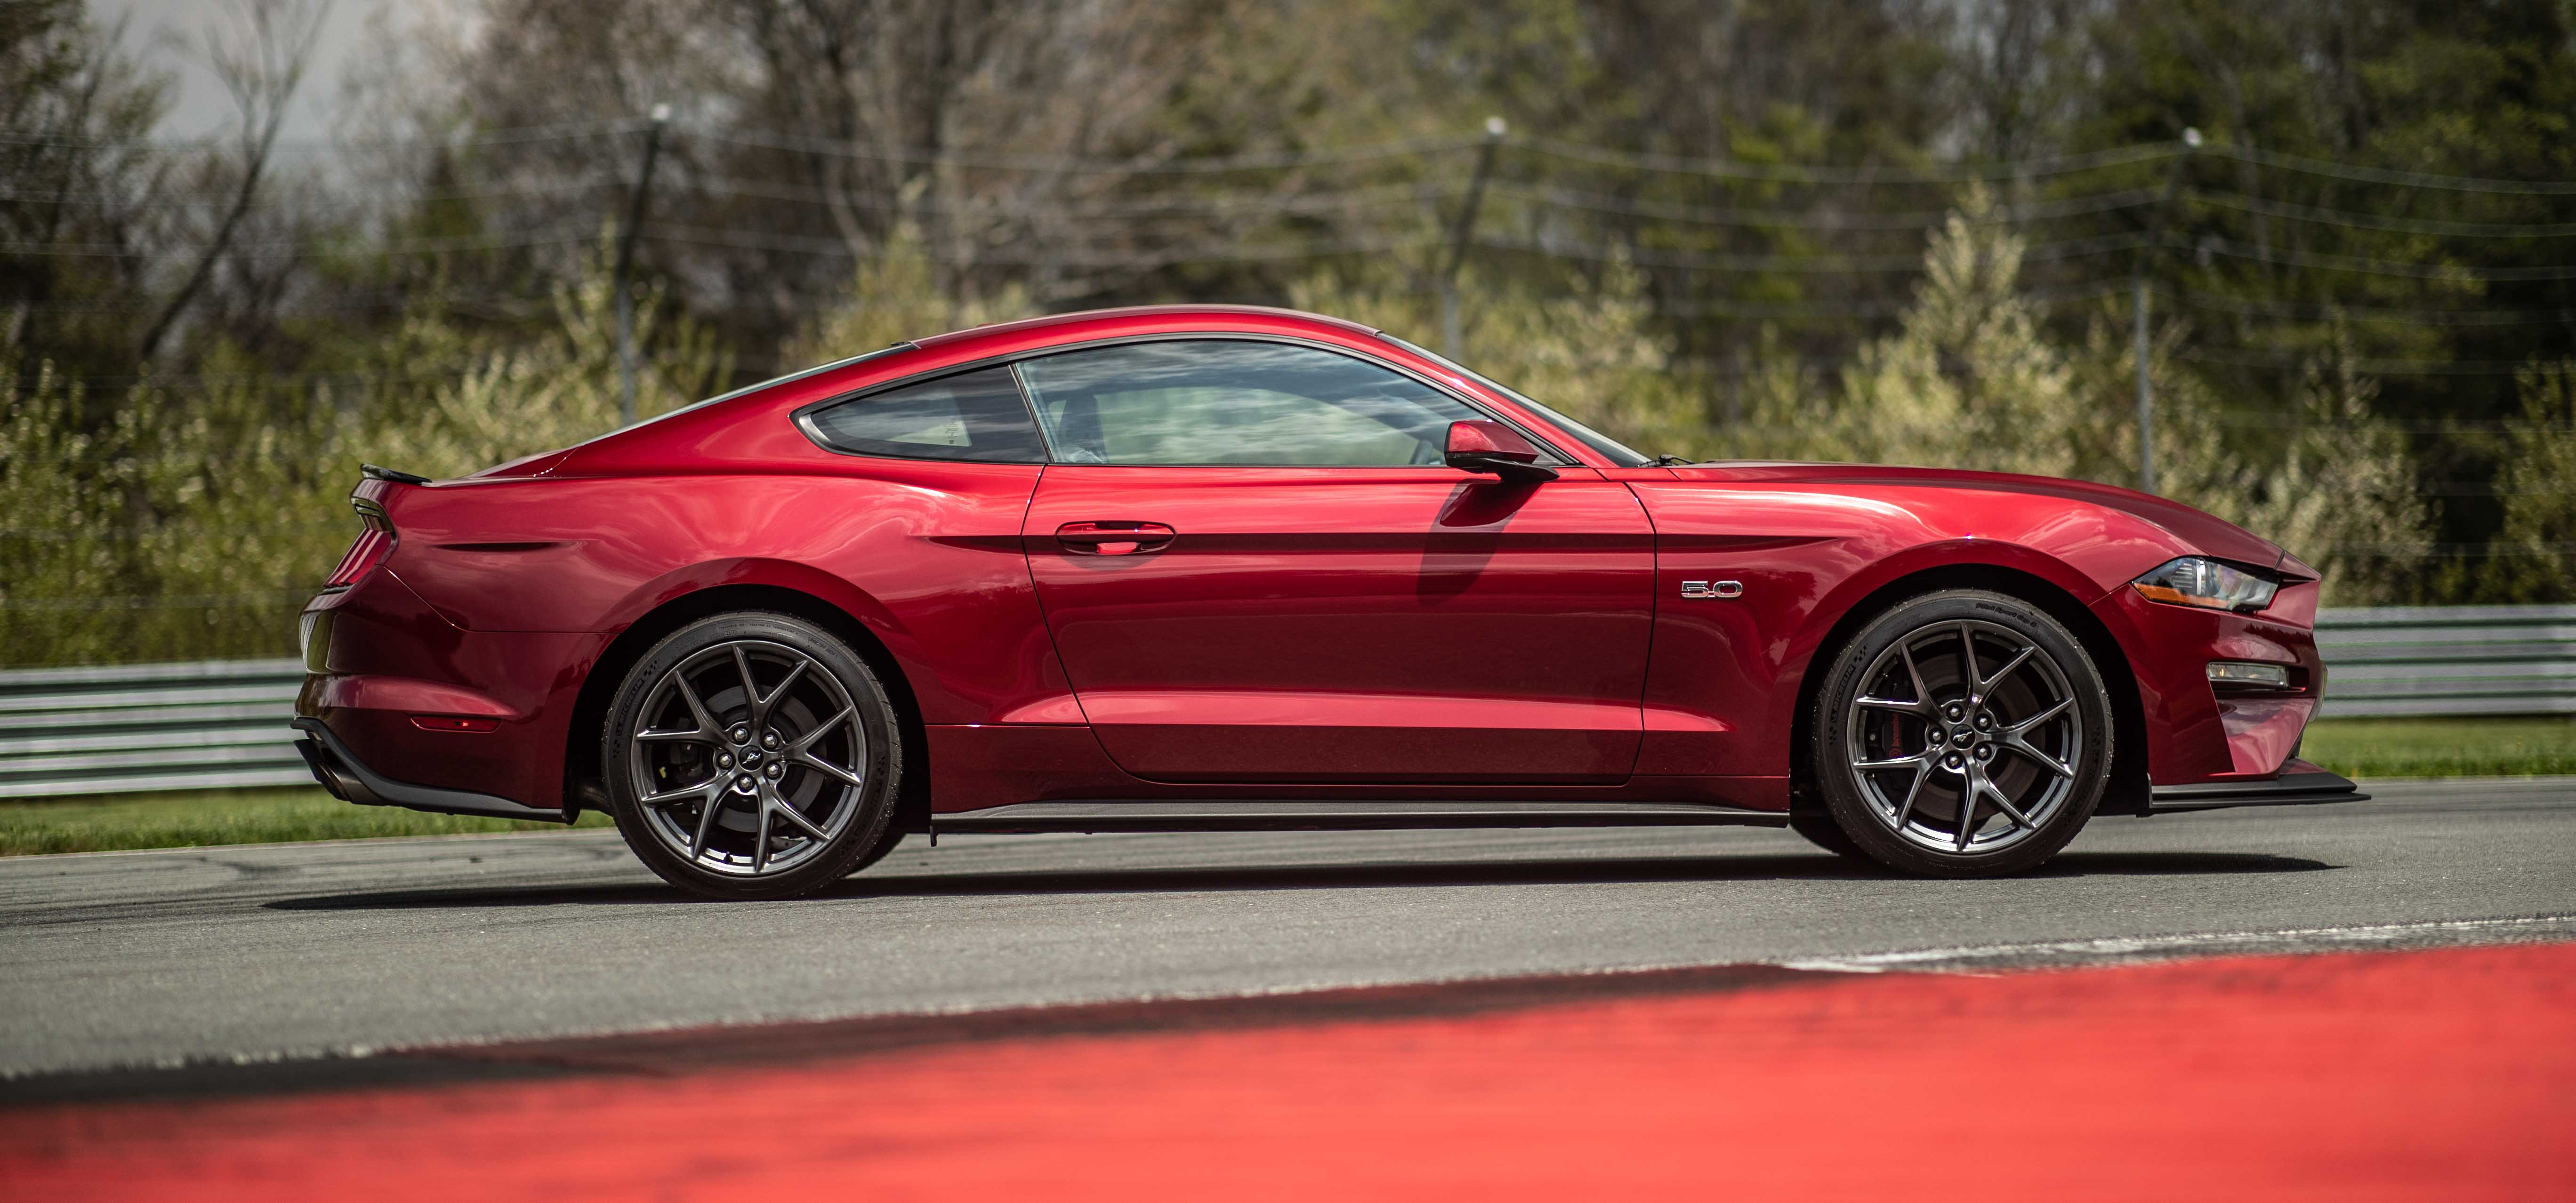 2018 Ford Mustang GT Performance Pack 2 red side shot